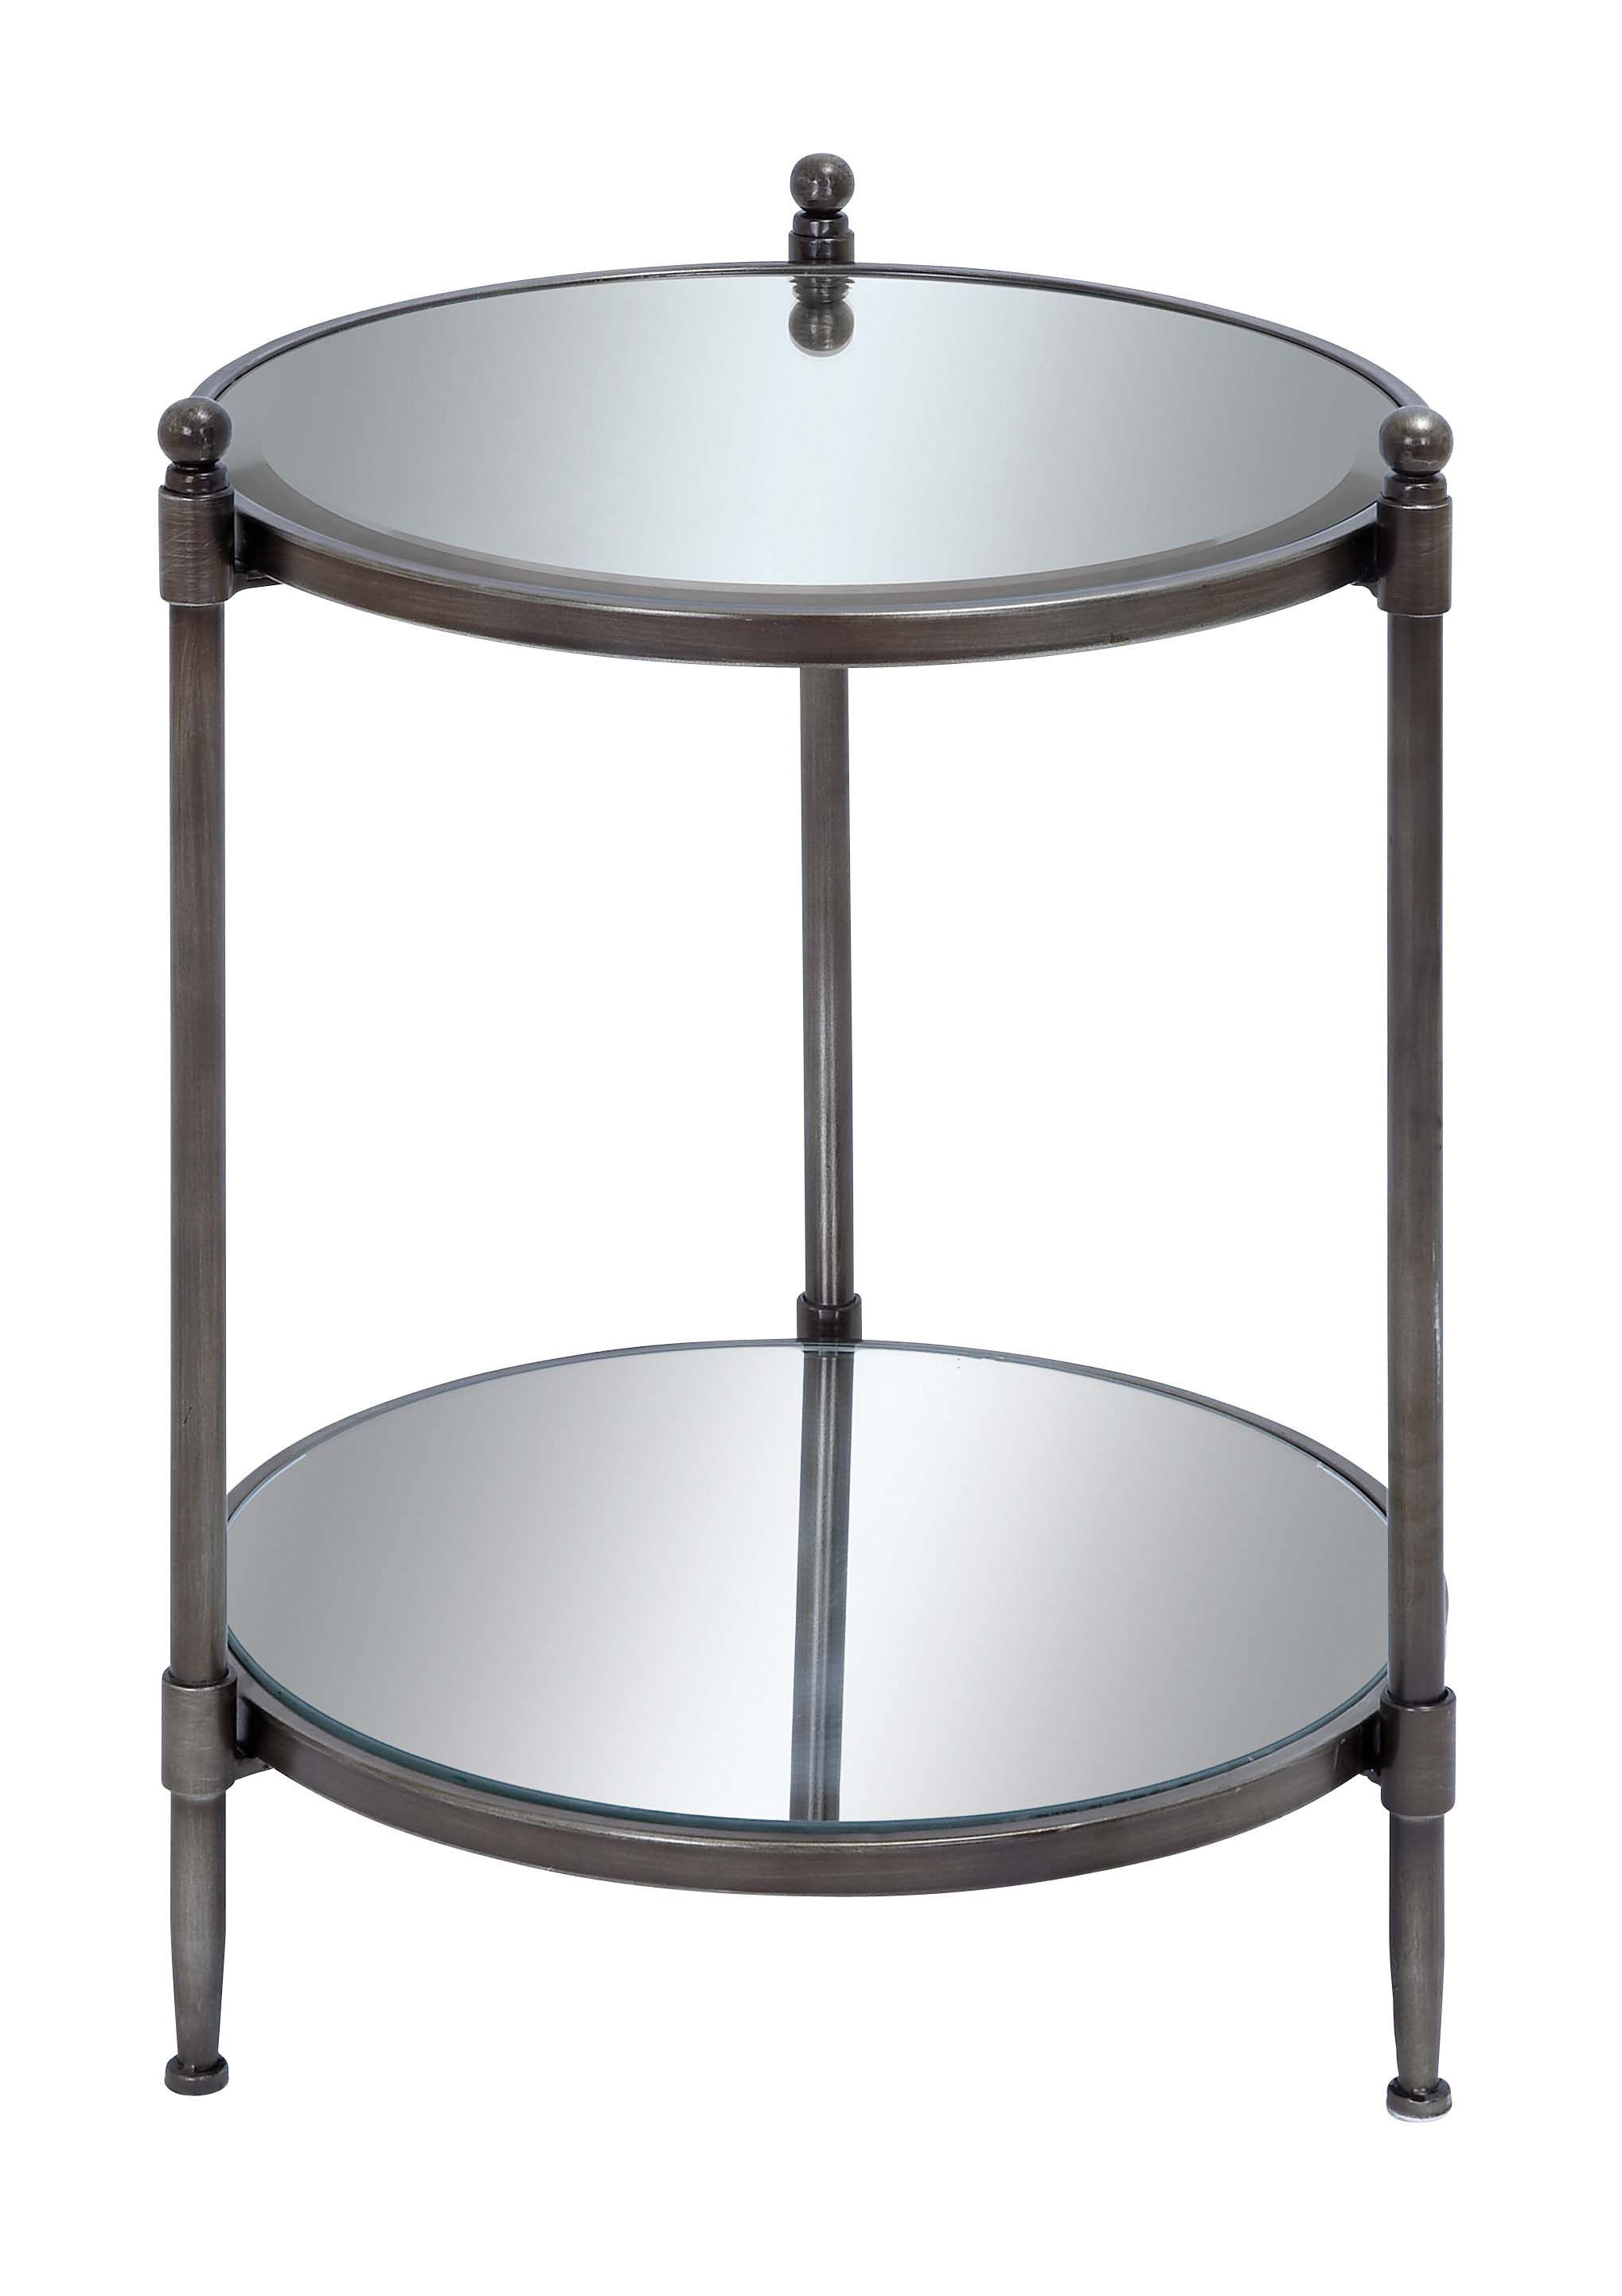 mirror accent table with metal framework products mirrored glass amish made furniture iron coffee changing dimensions modern designs rustic kitchen tables patio umbrella bellevue